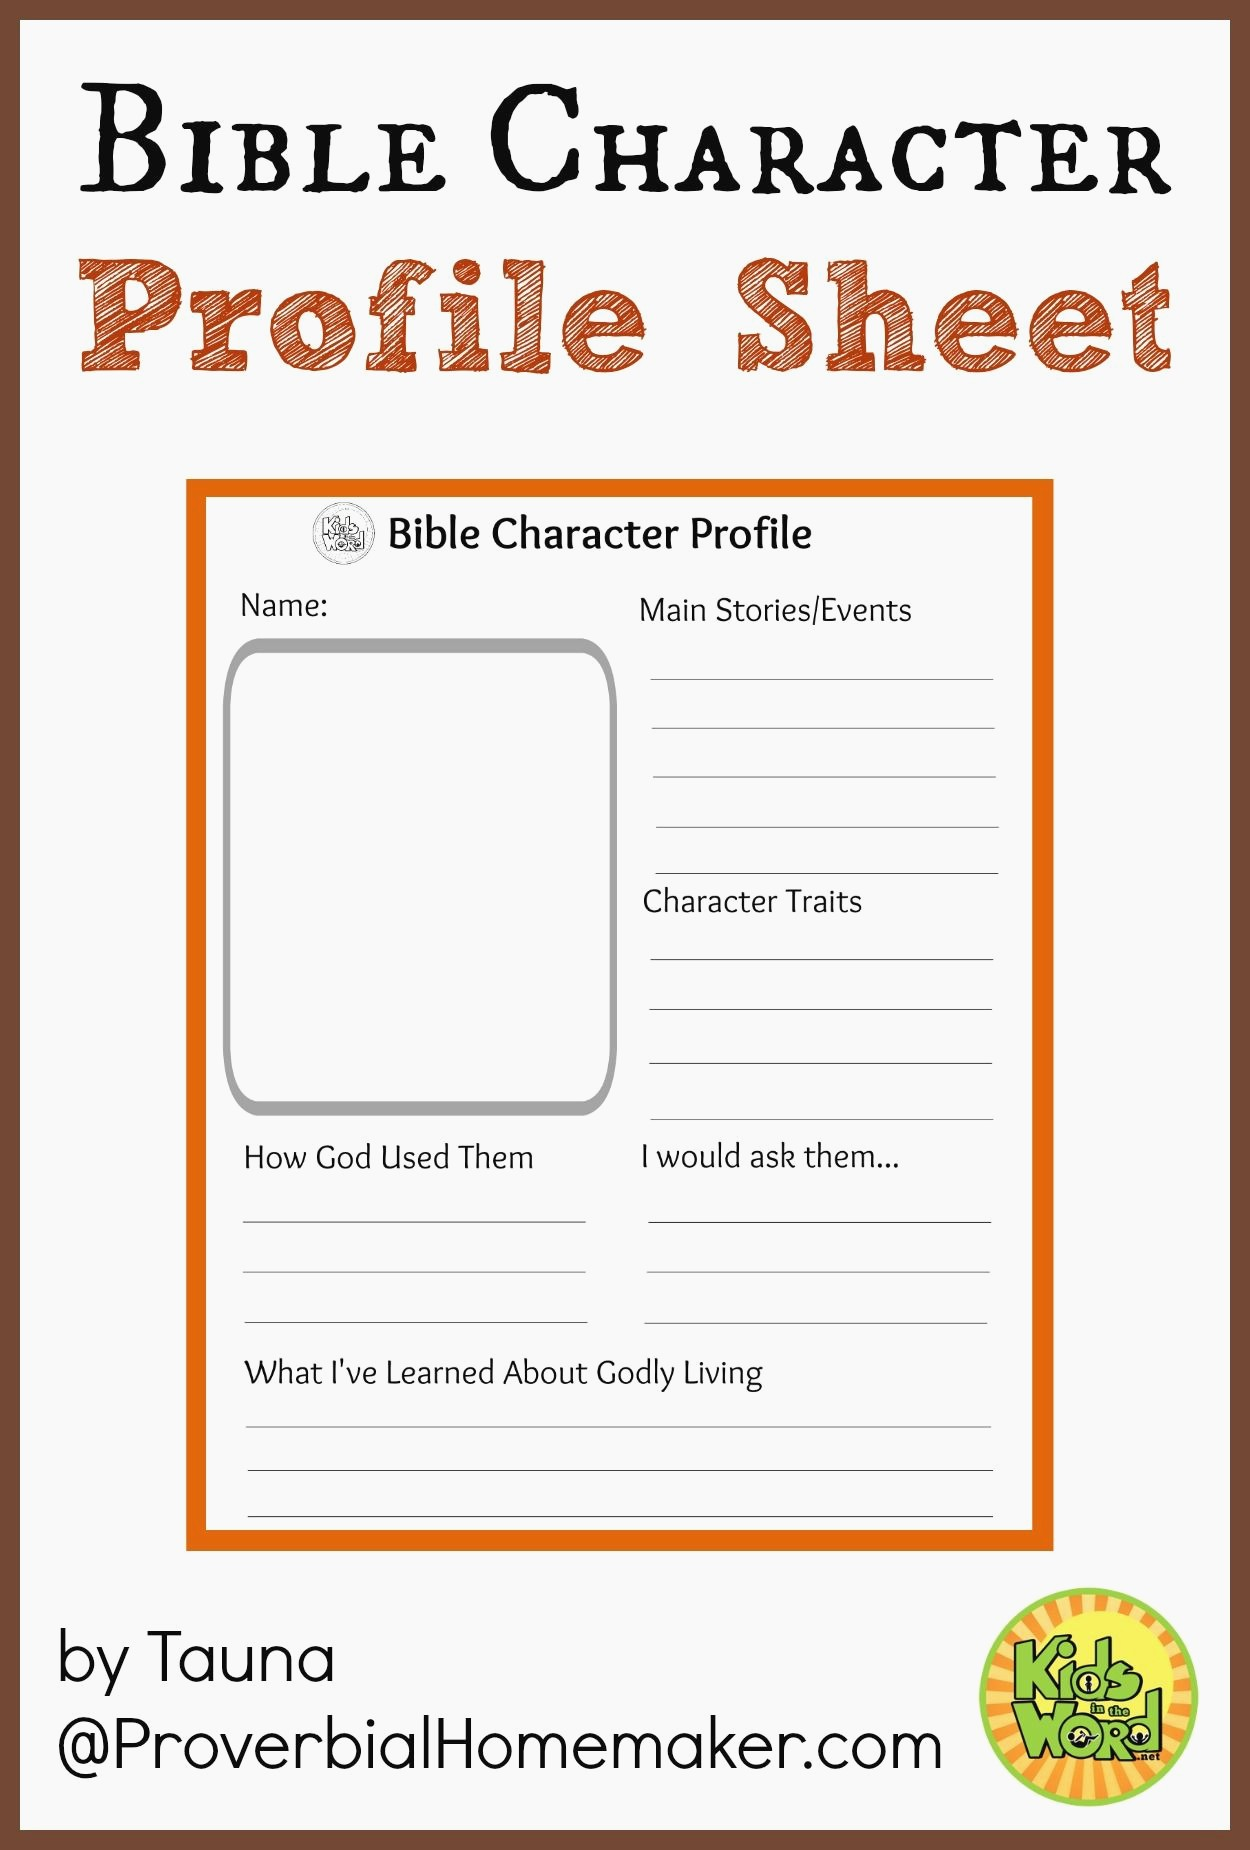 Bible Timeline Worksheet Bible Character Profile Sheet